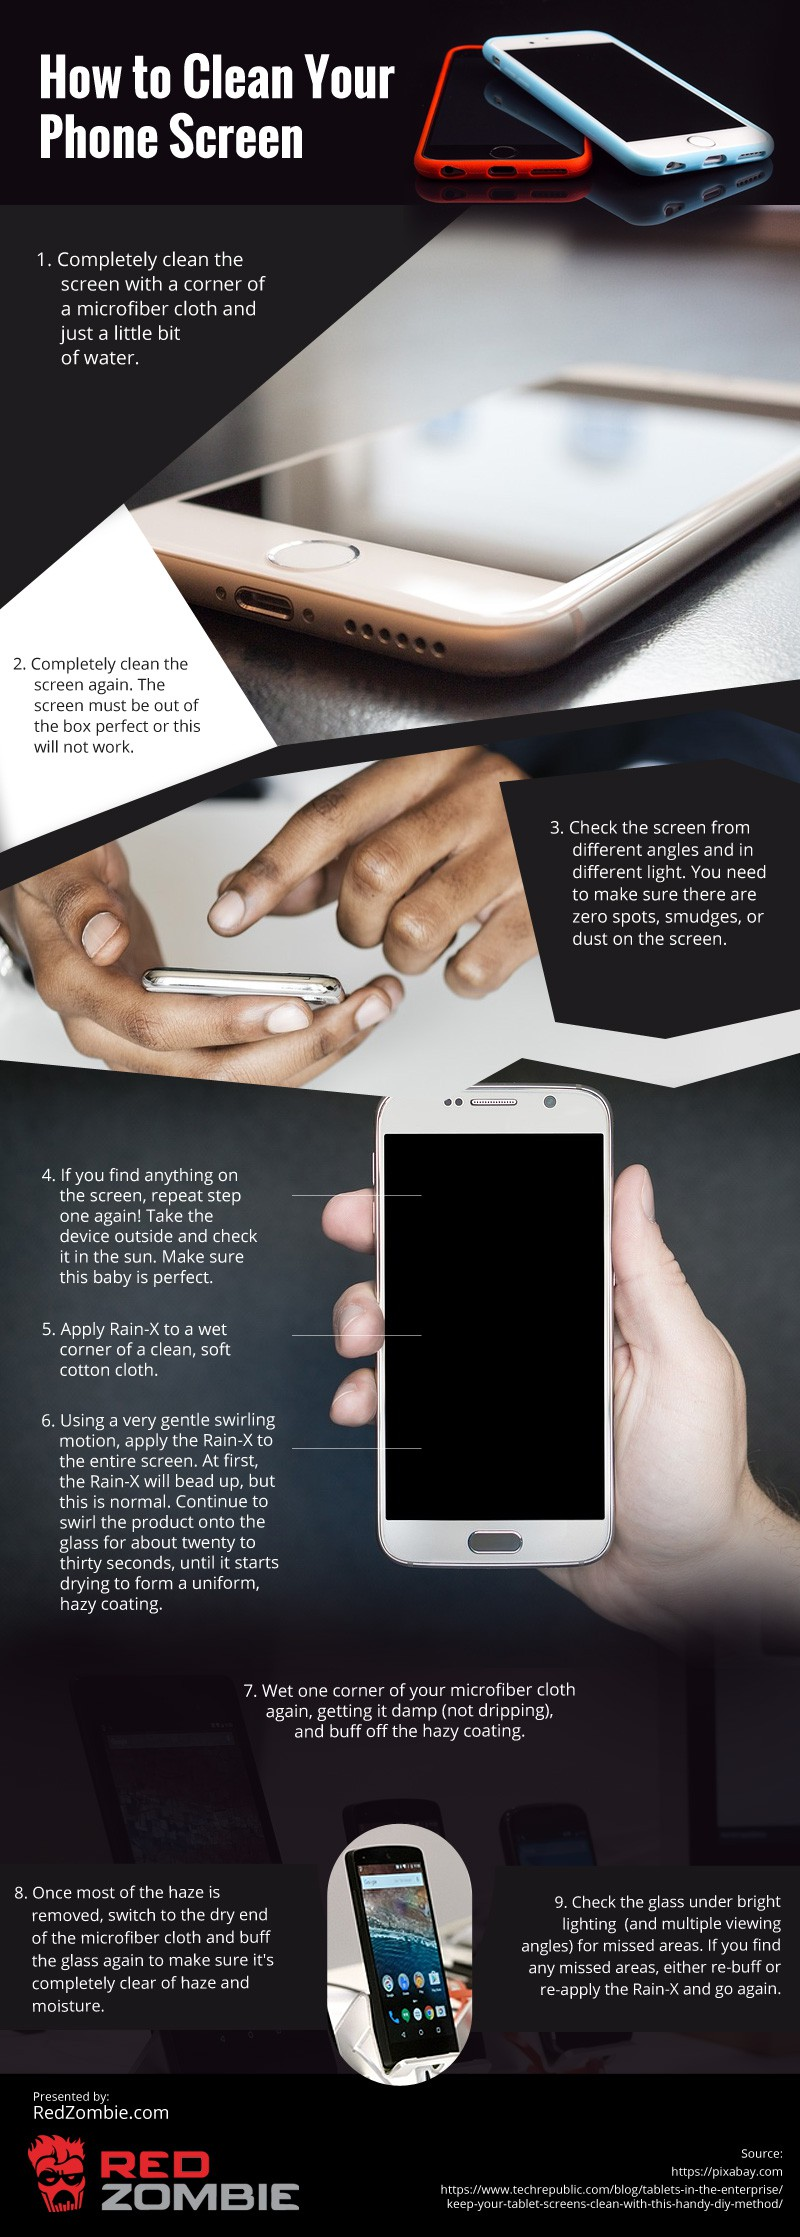 How-to-Clean-Your-Phone-Screen Infographic